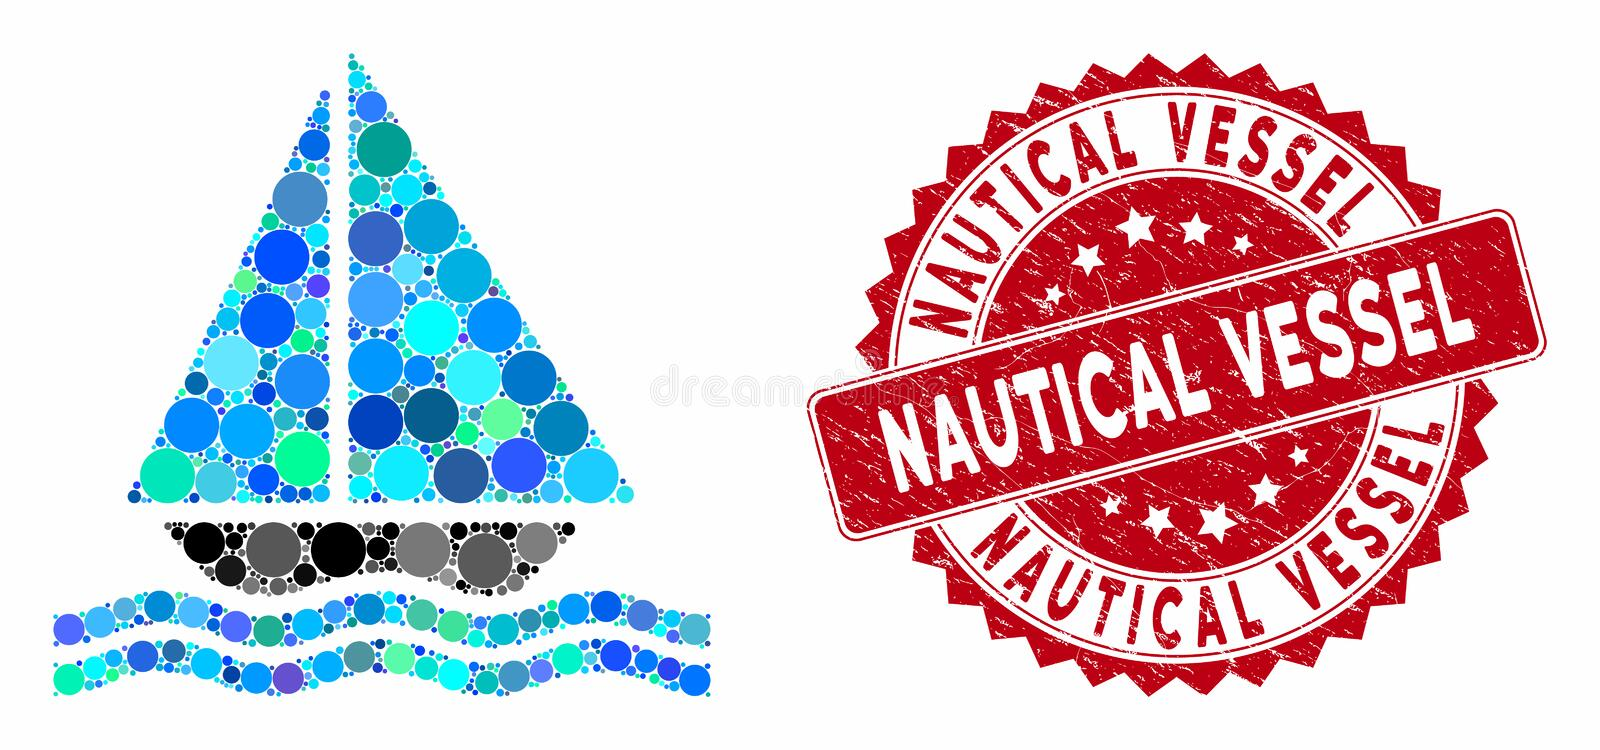 Mosaic Yacht with Scratched Nautical Vessel Stamp stock illustration